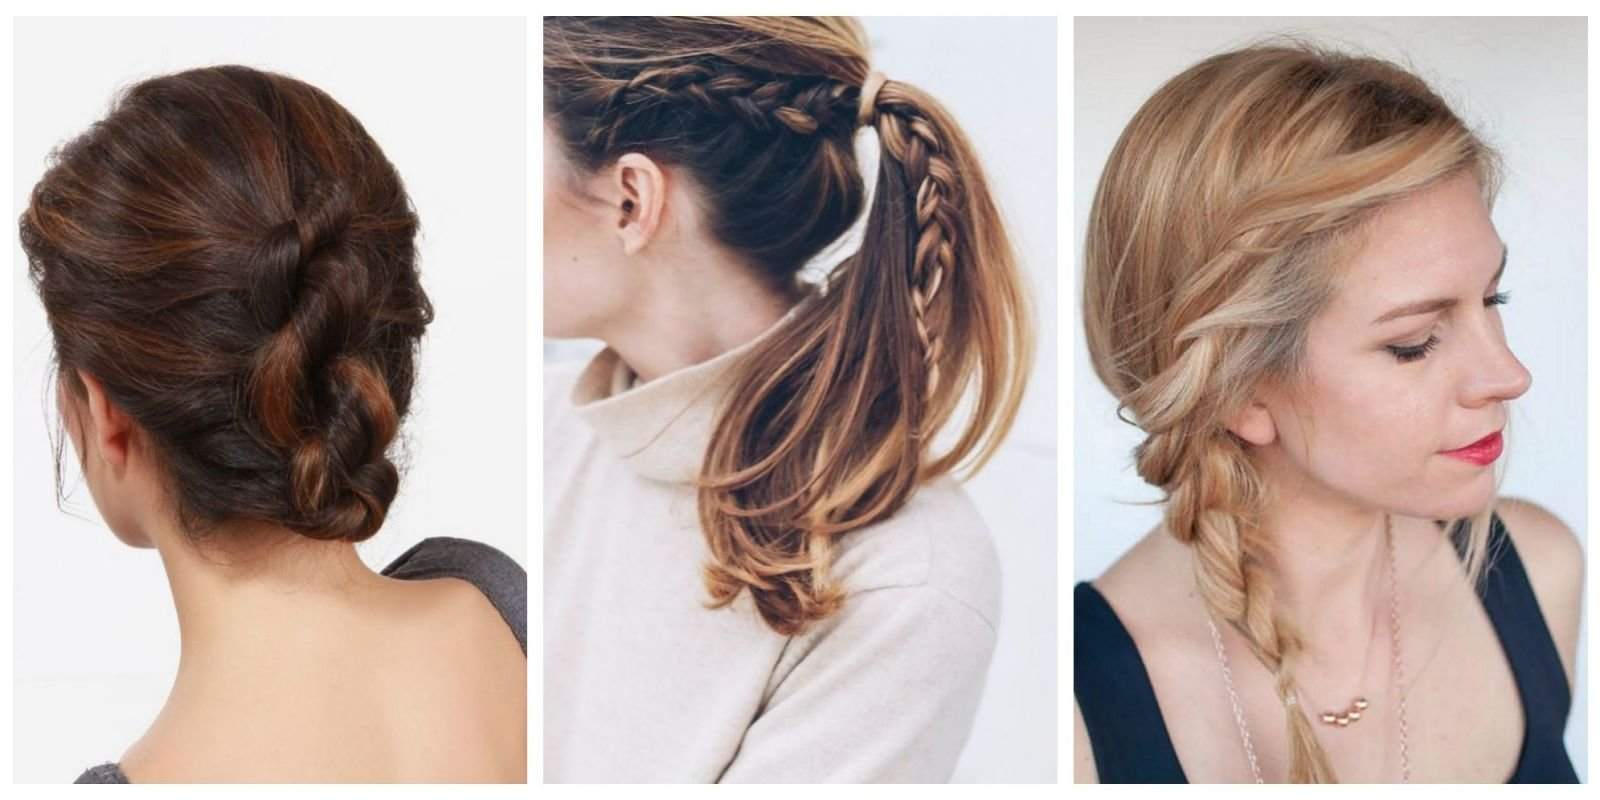 The Best The 10 Easiest Summer Hair Ideas On Pinterest Easy Pictures